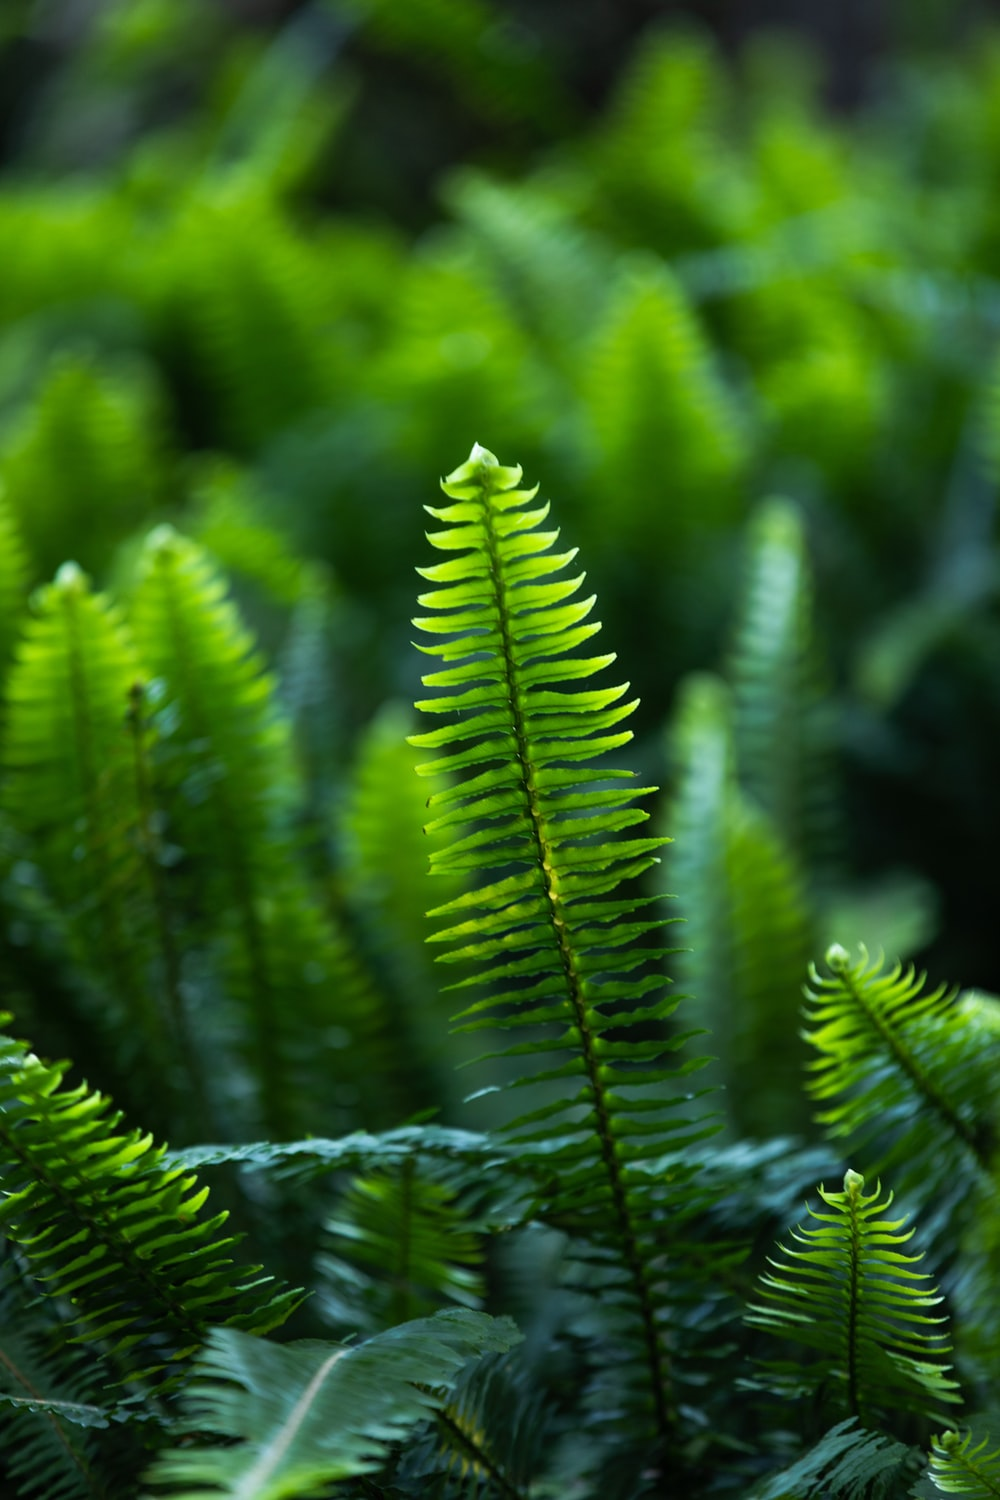 green fern plant in close up photography